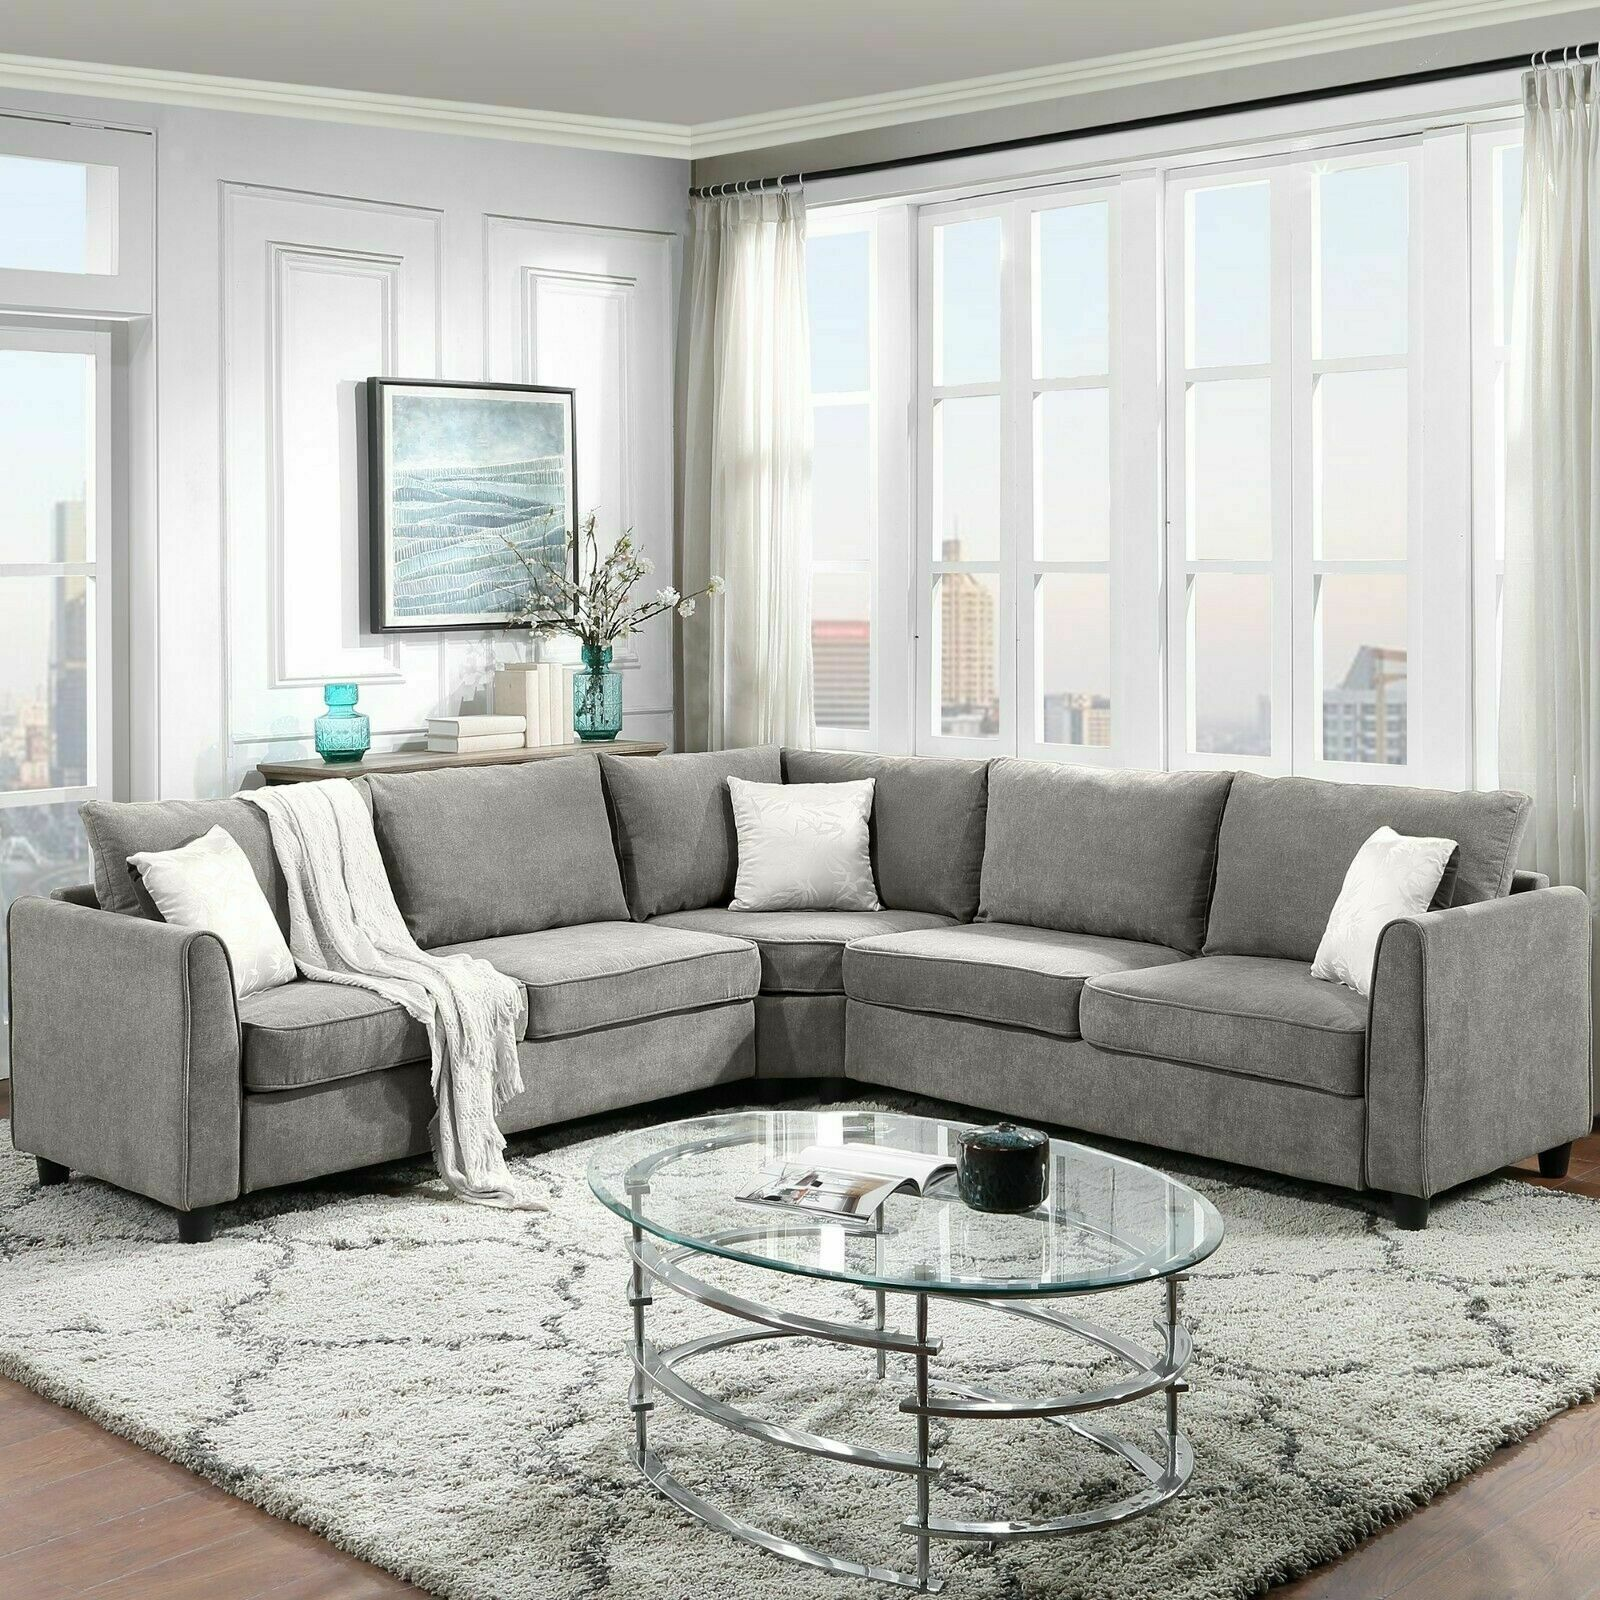 """100*100""""L Shape Big Sectional Sofa Couch Couch Fabric Grey 3 Pillows Included"""